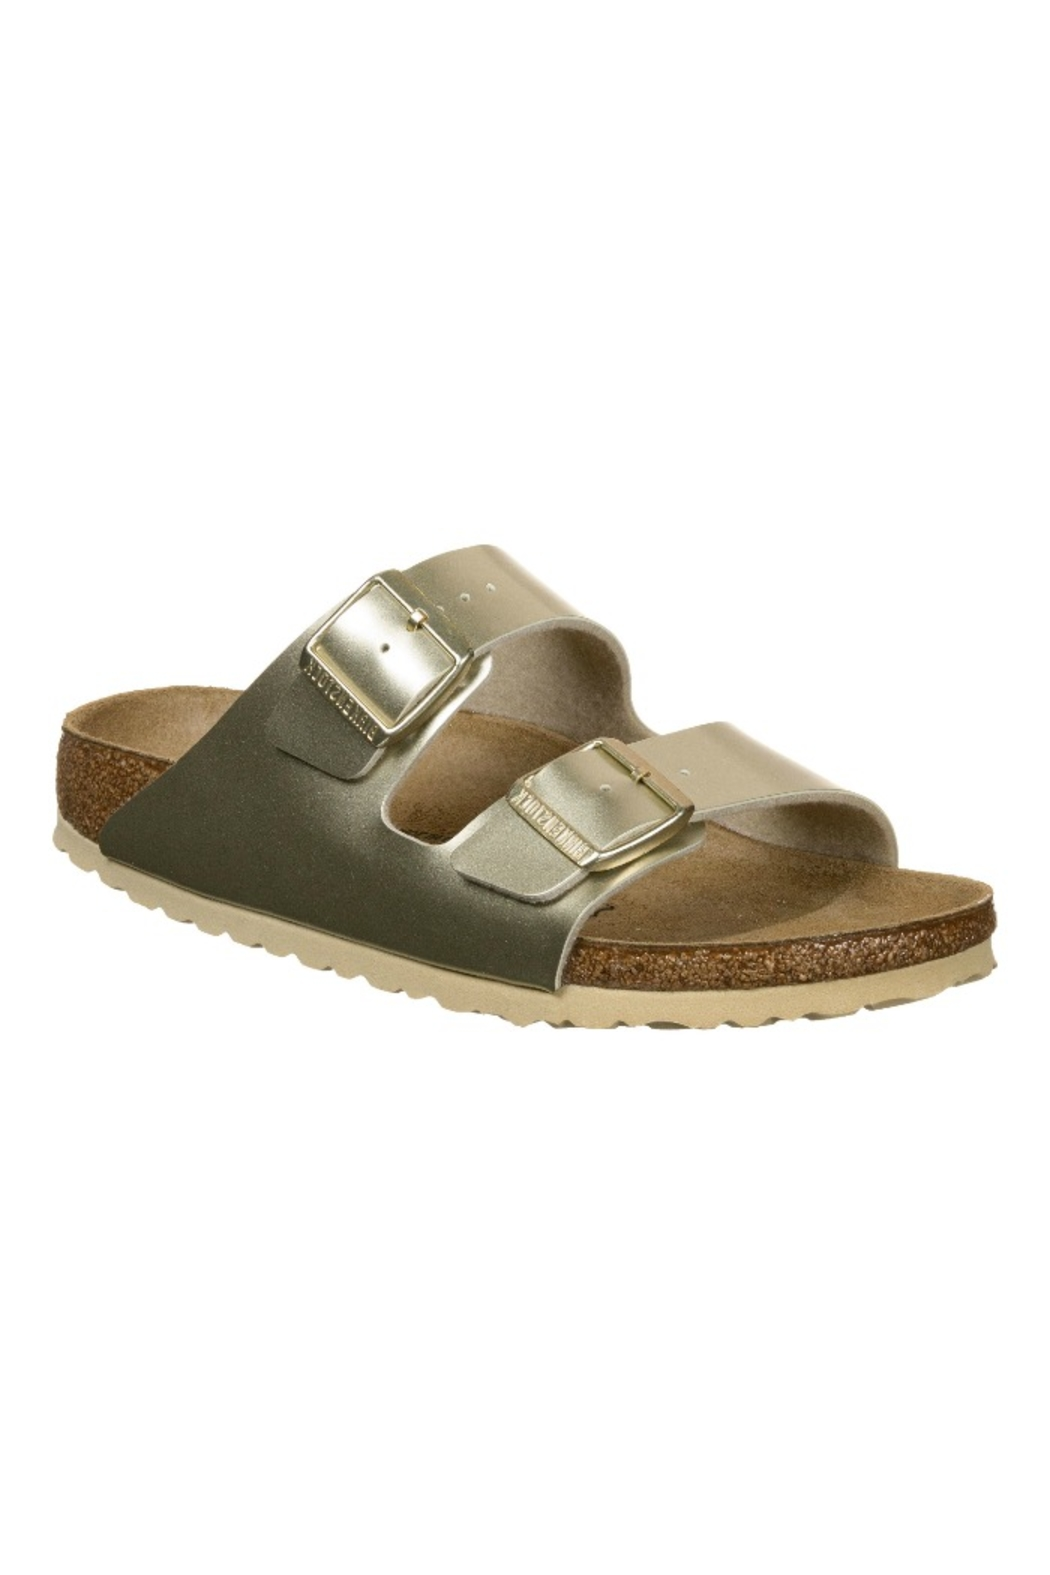 Birkenstock Arizona Kids in Gold - Main Image